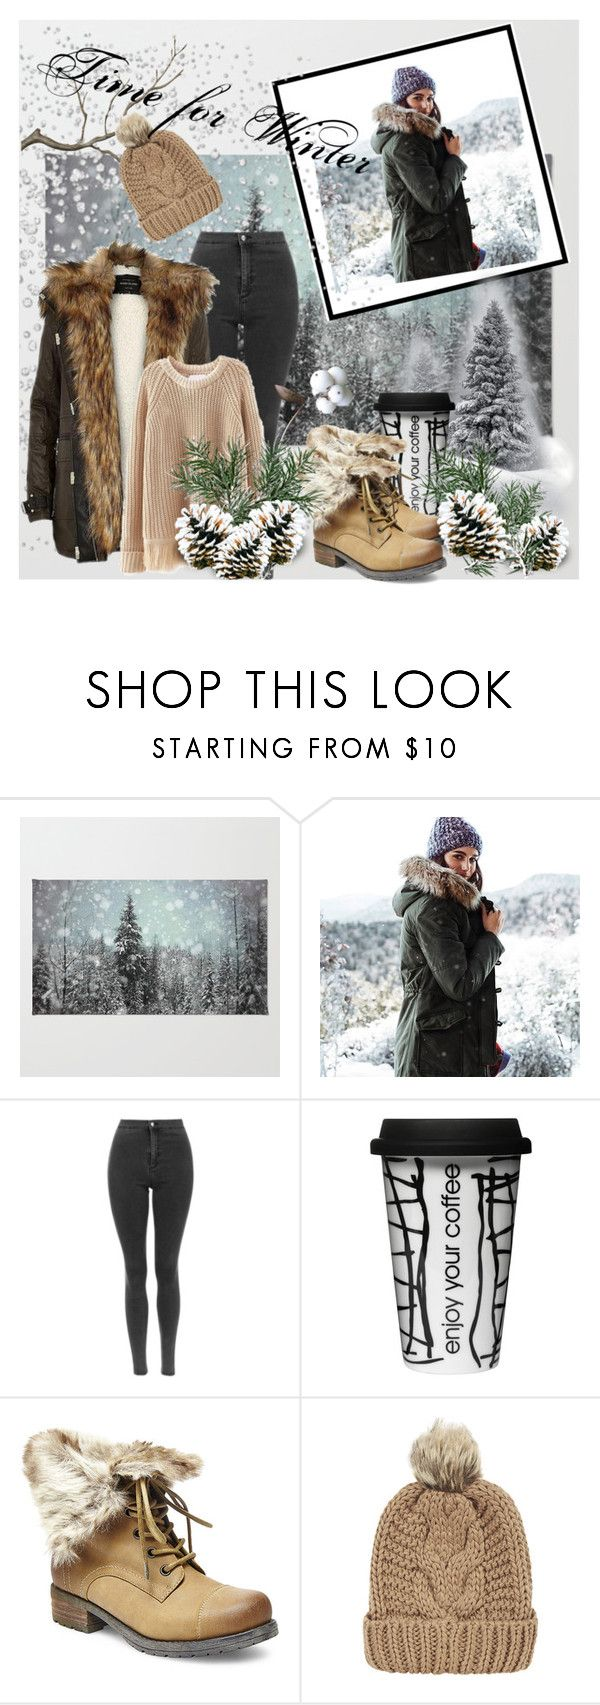 """""""Time for Winter"""" by ajmalina ❤ liked on Polyvore featuring American Eagle Outfitters, River Island, Dot & Bo, Steve Madden and Chicnova Fashion"""